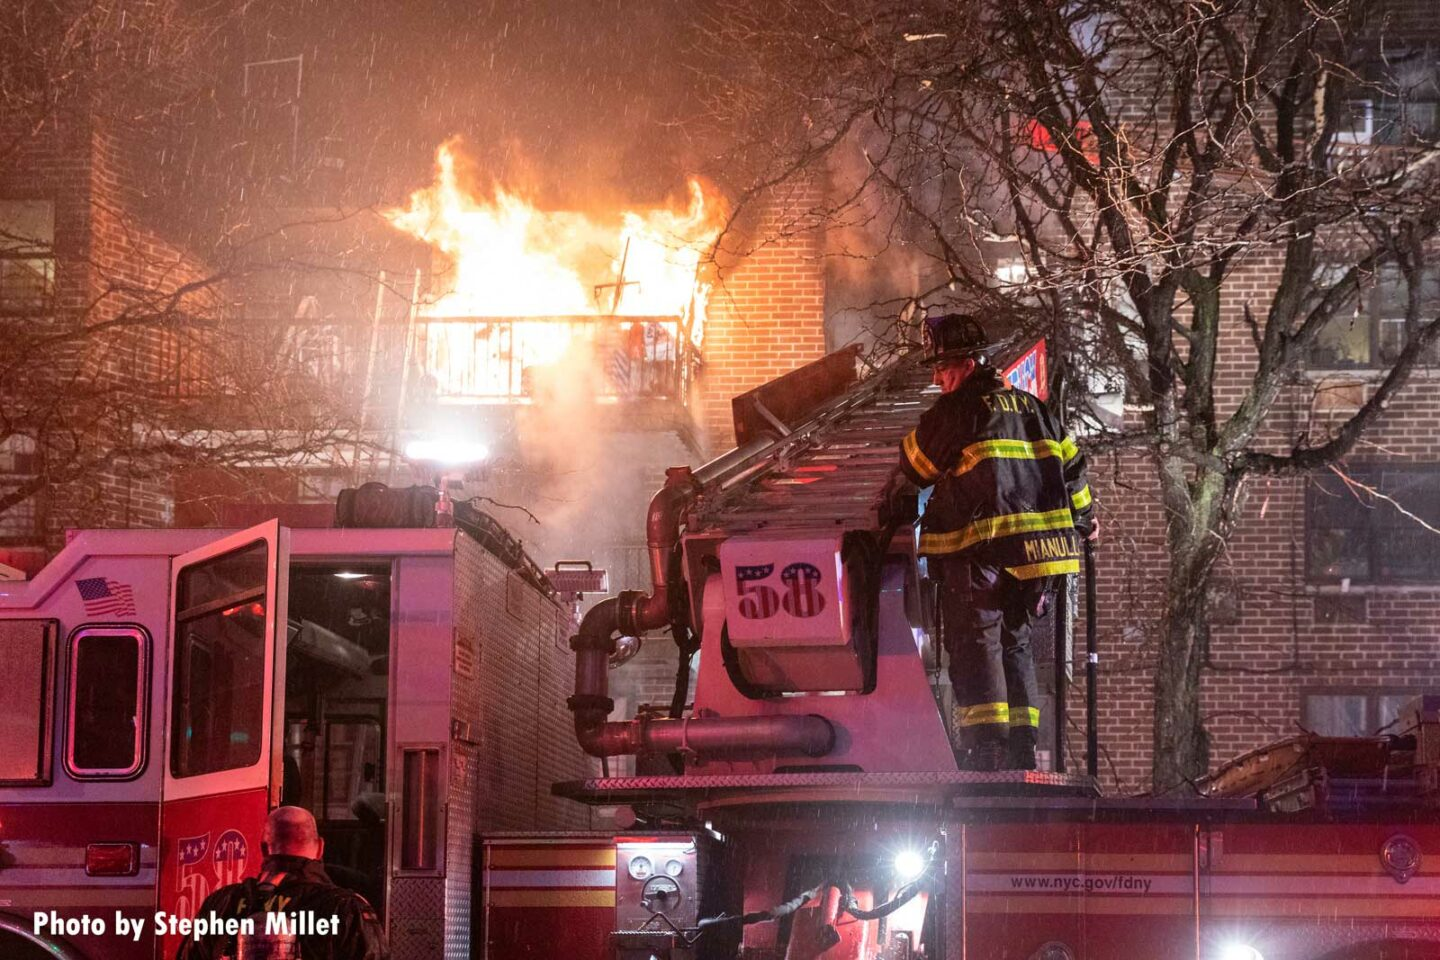 Flames rage behind a firefighter working on Truck 58 in the Bronx